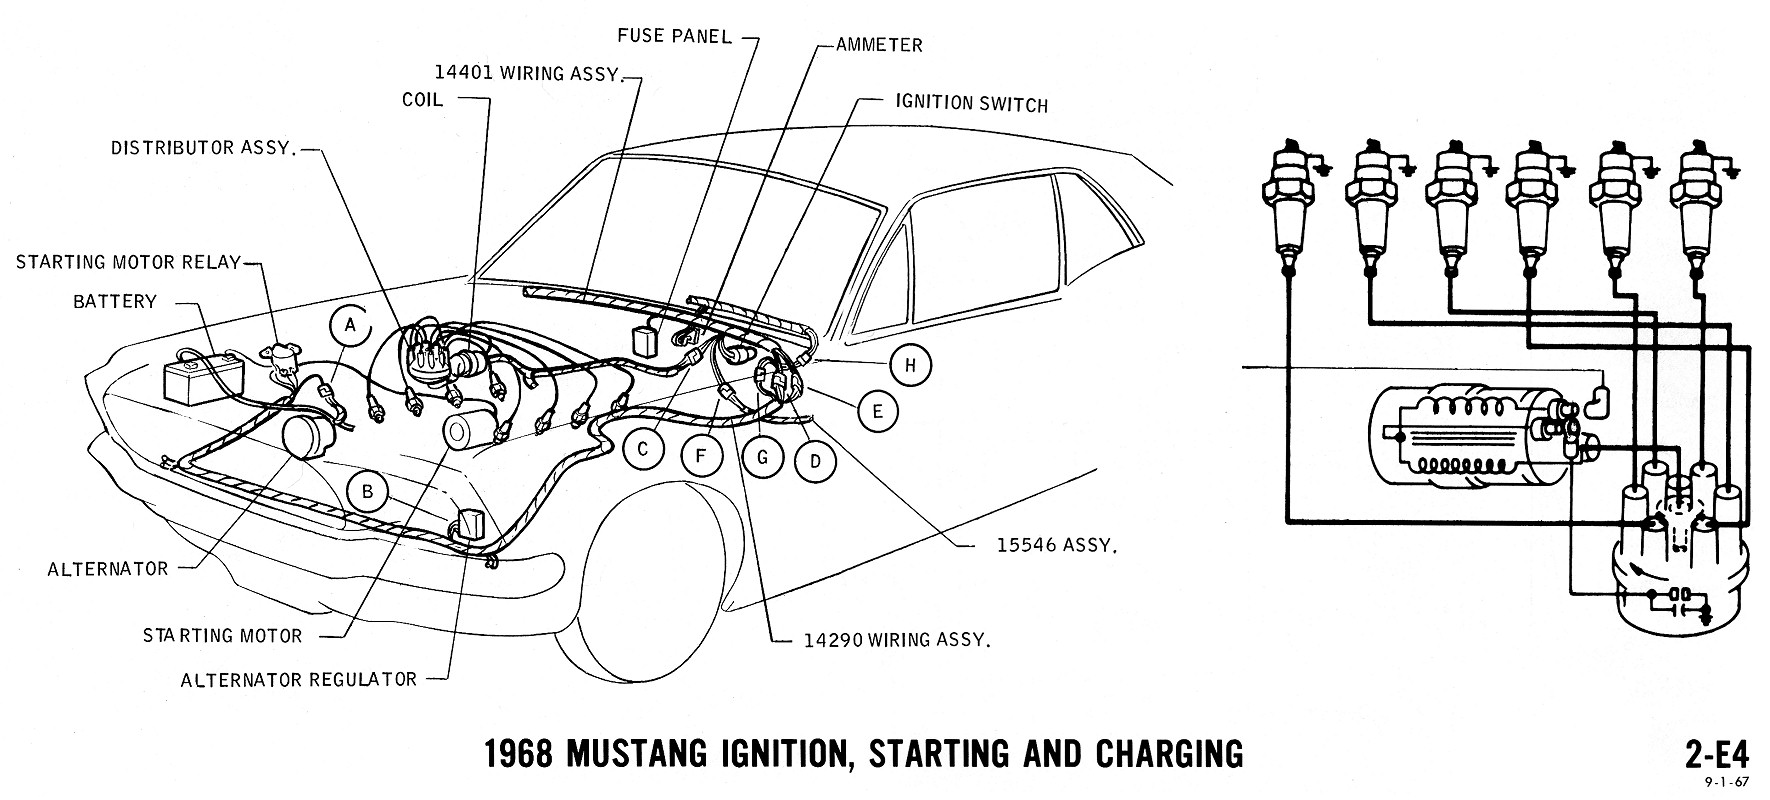 1968 mustang wiring diagrams and vacuum schematics 1967 Impala Gauge Wiring  Diagram 1966 Chevy Impala Wiring